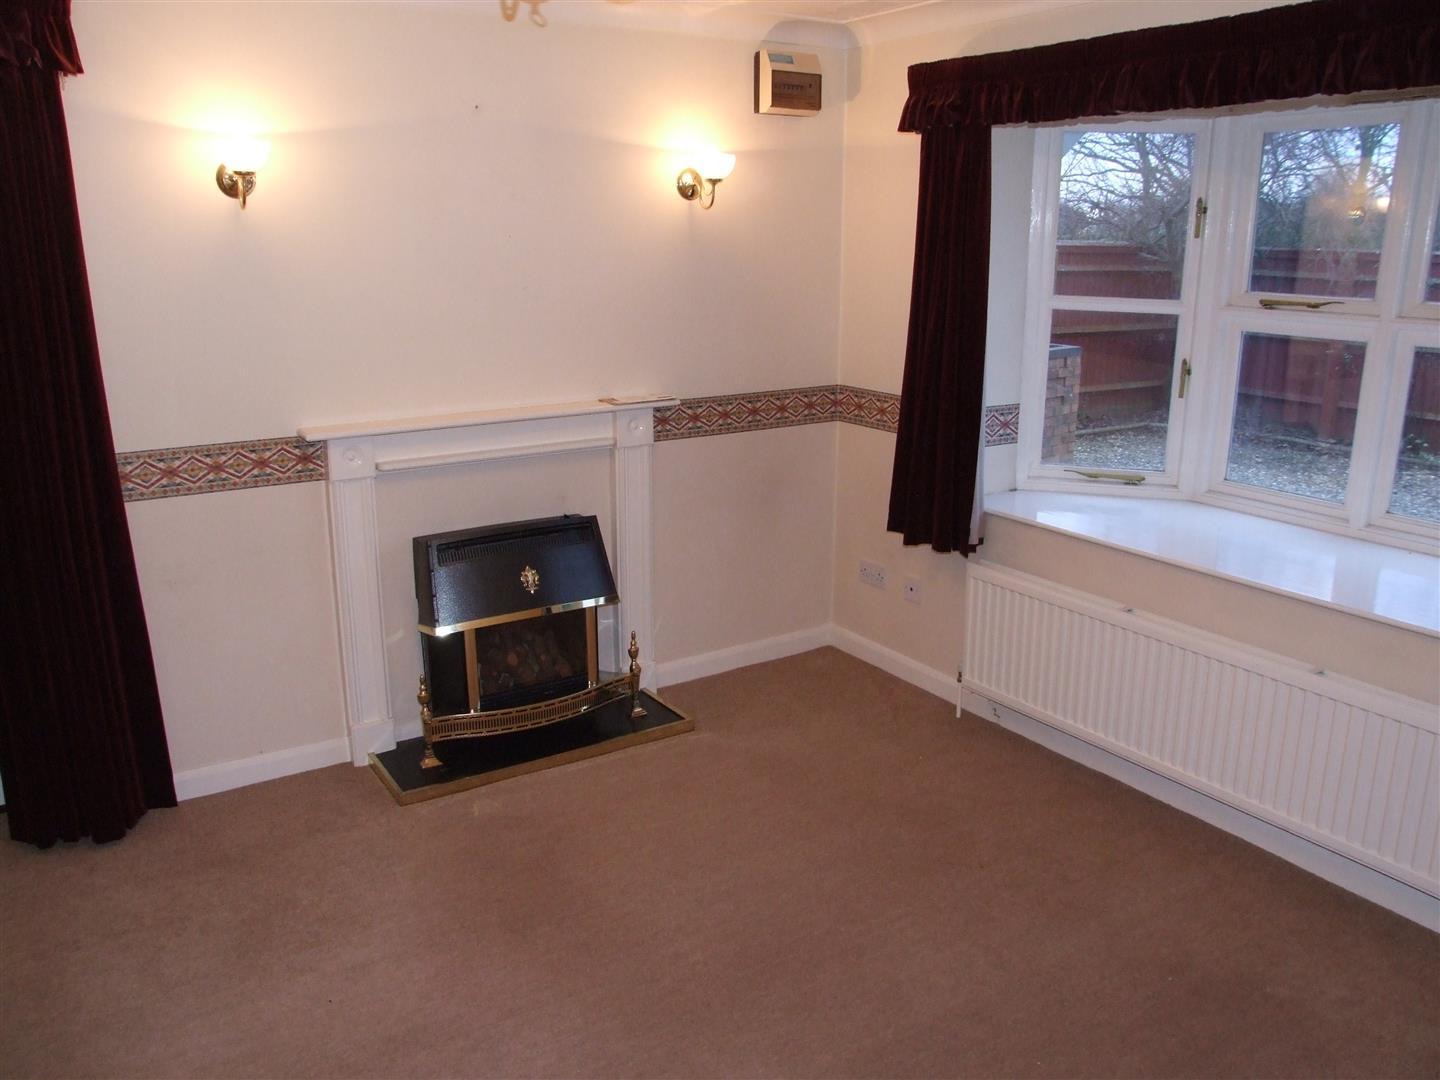 1 bed house to rent in Long Sutton Spalding, PE12 9RR  - Property Image 1